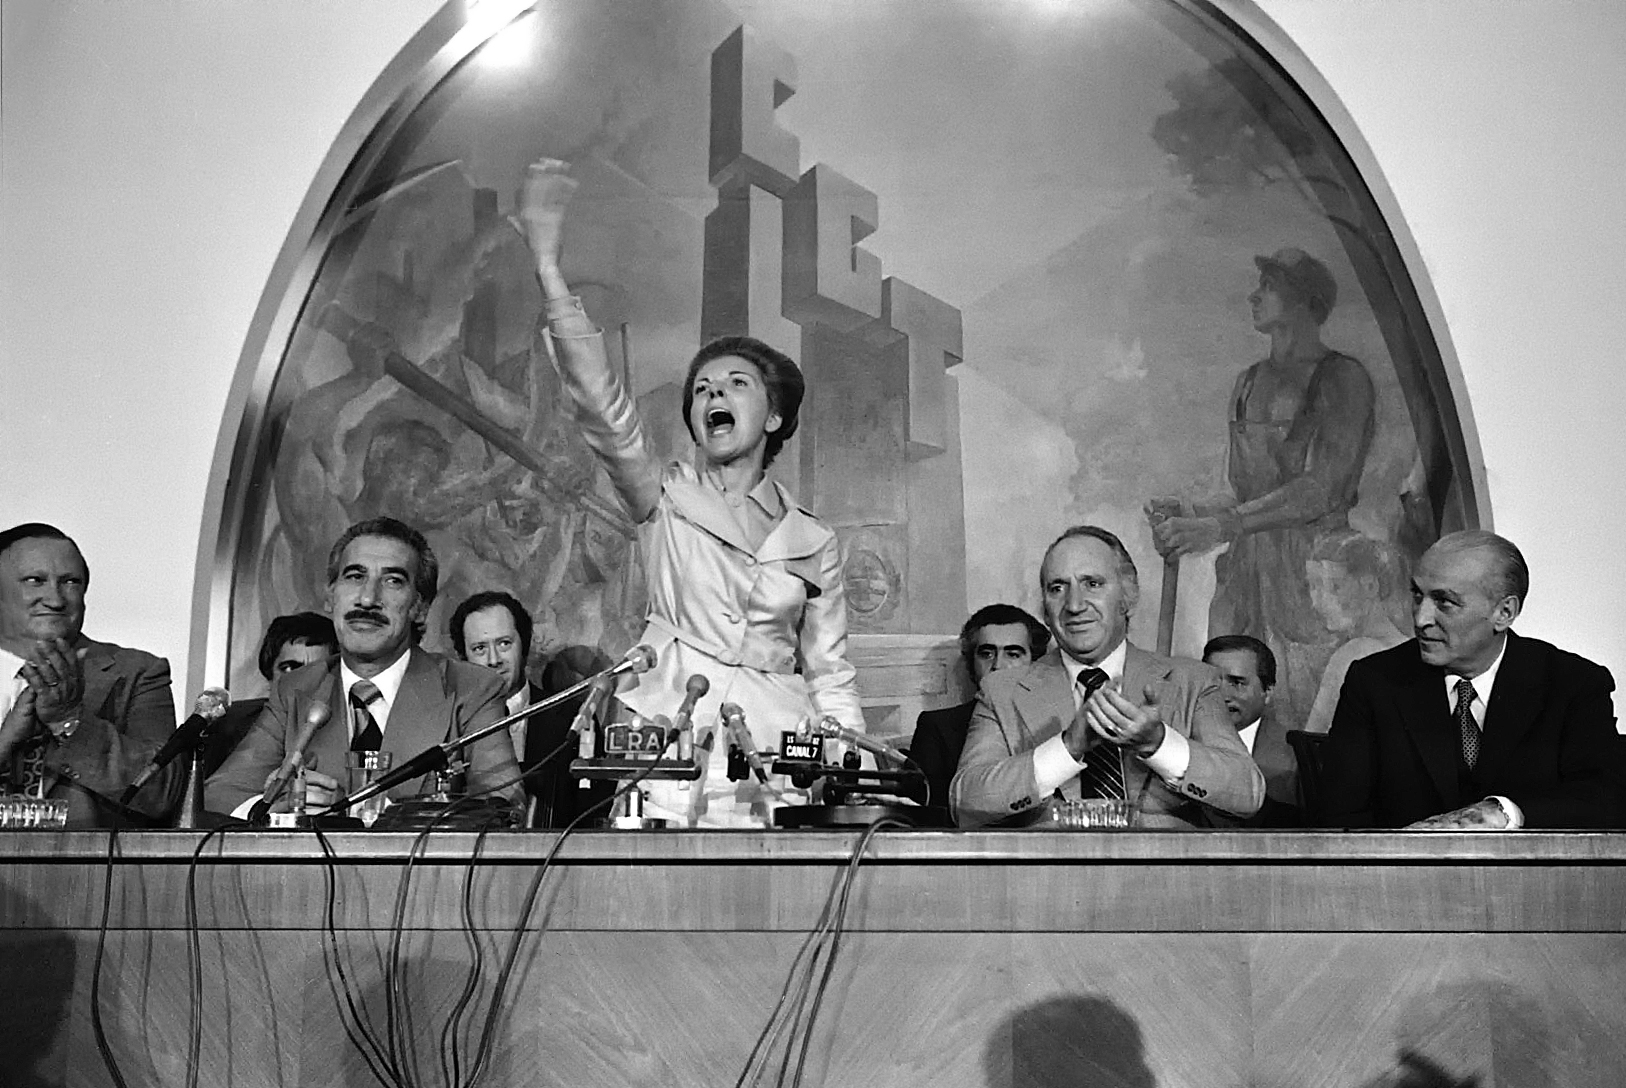 Isabel Peron speaking at the Workers' Union headquarters, 1975